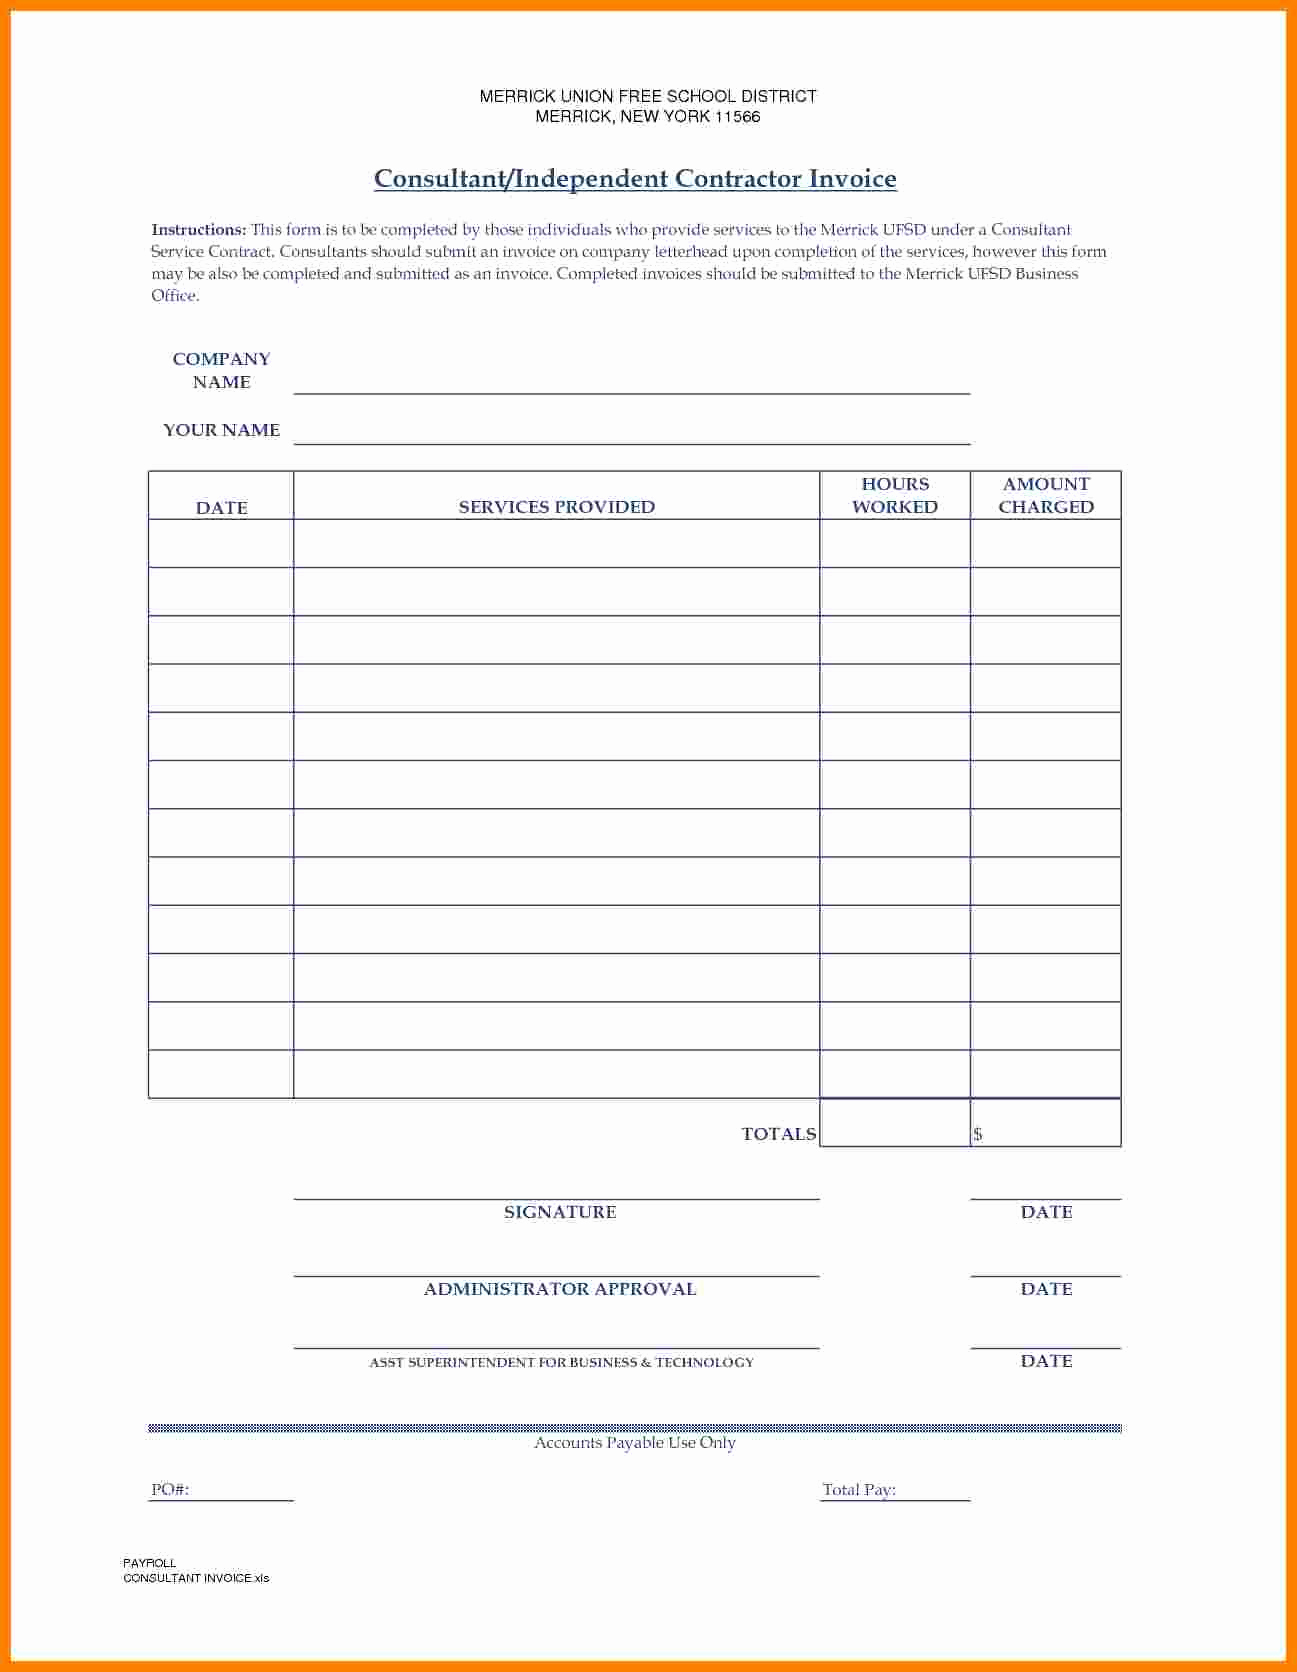 Independent Contractor Invoice Template Lovely 7 Independent Contractor Invoice